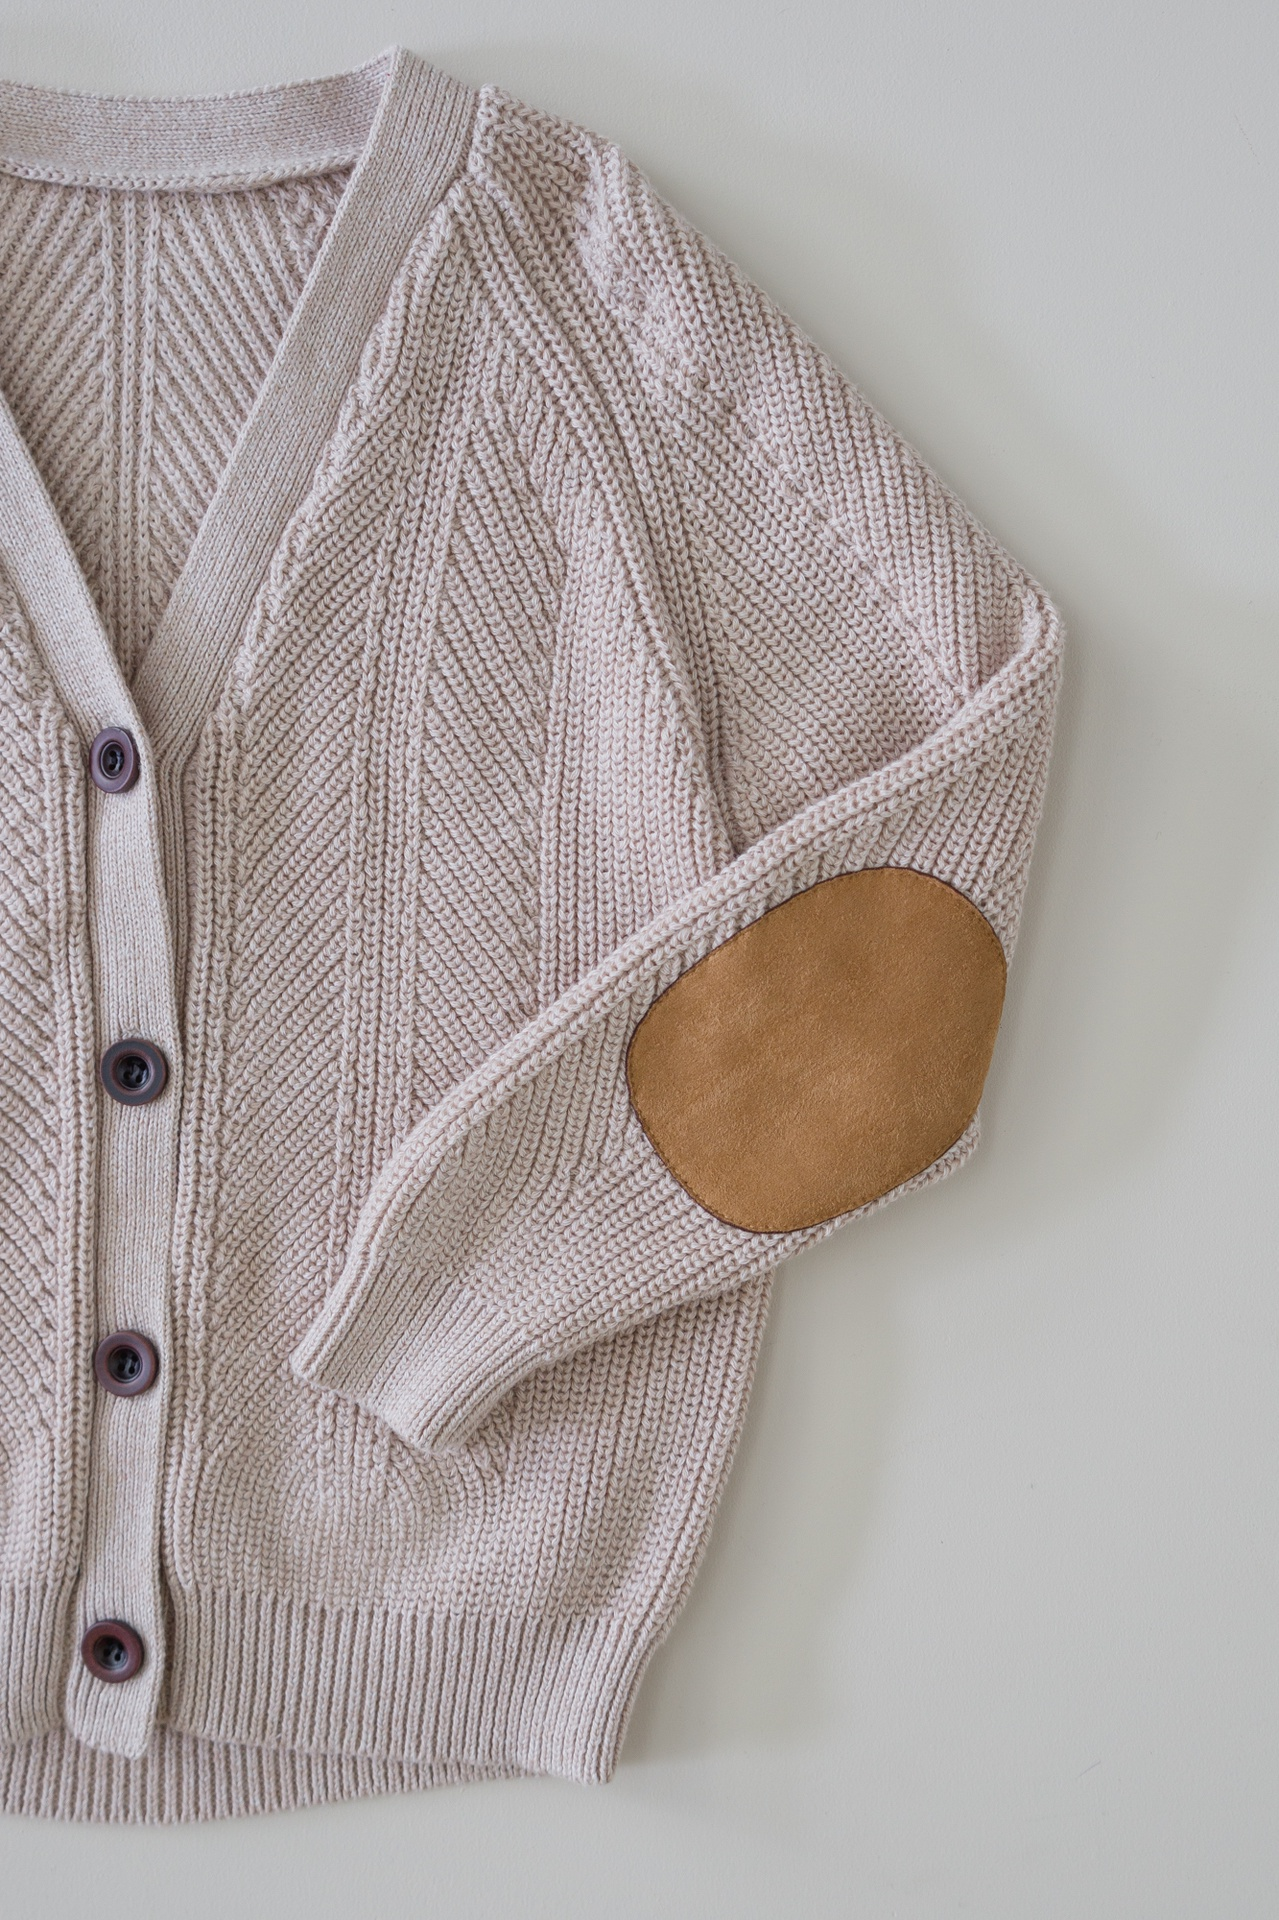 Two Darlings Kids Knit Cardigan (cashew) ** Pre ORder